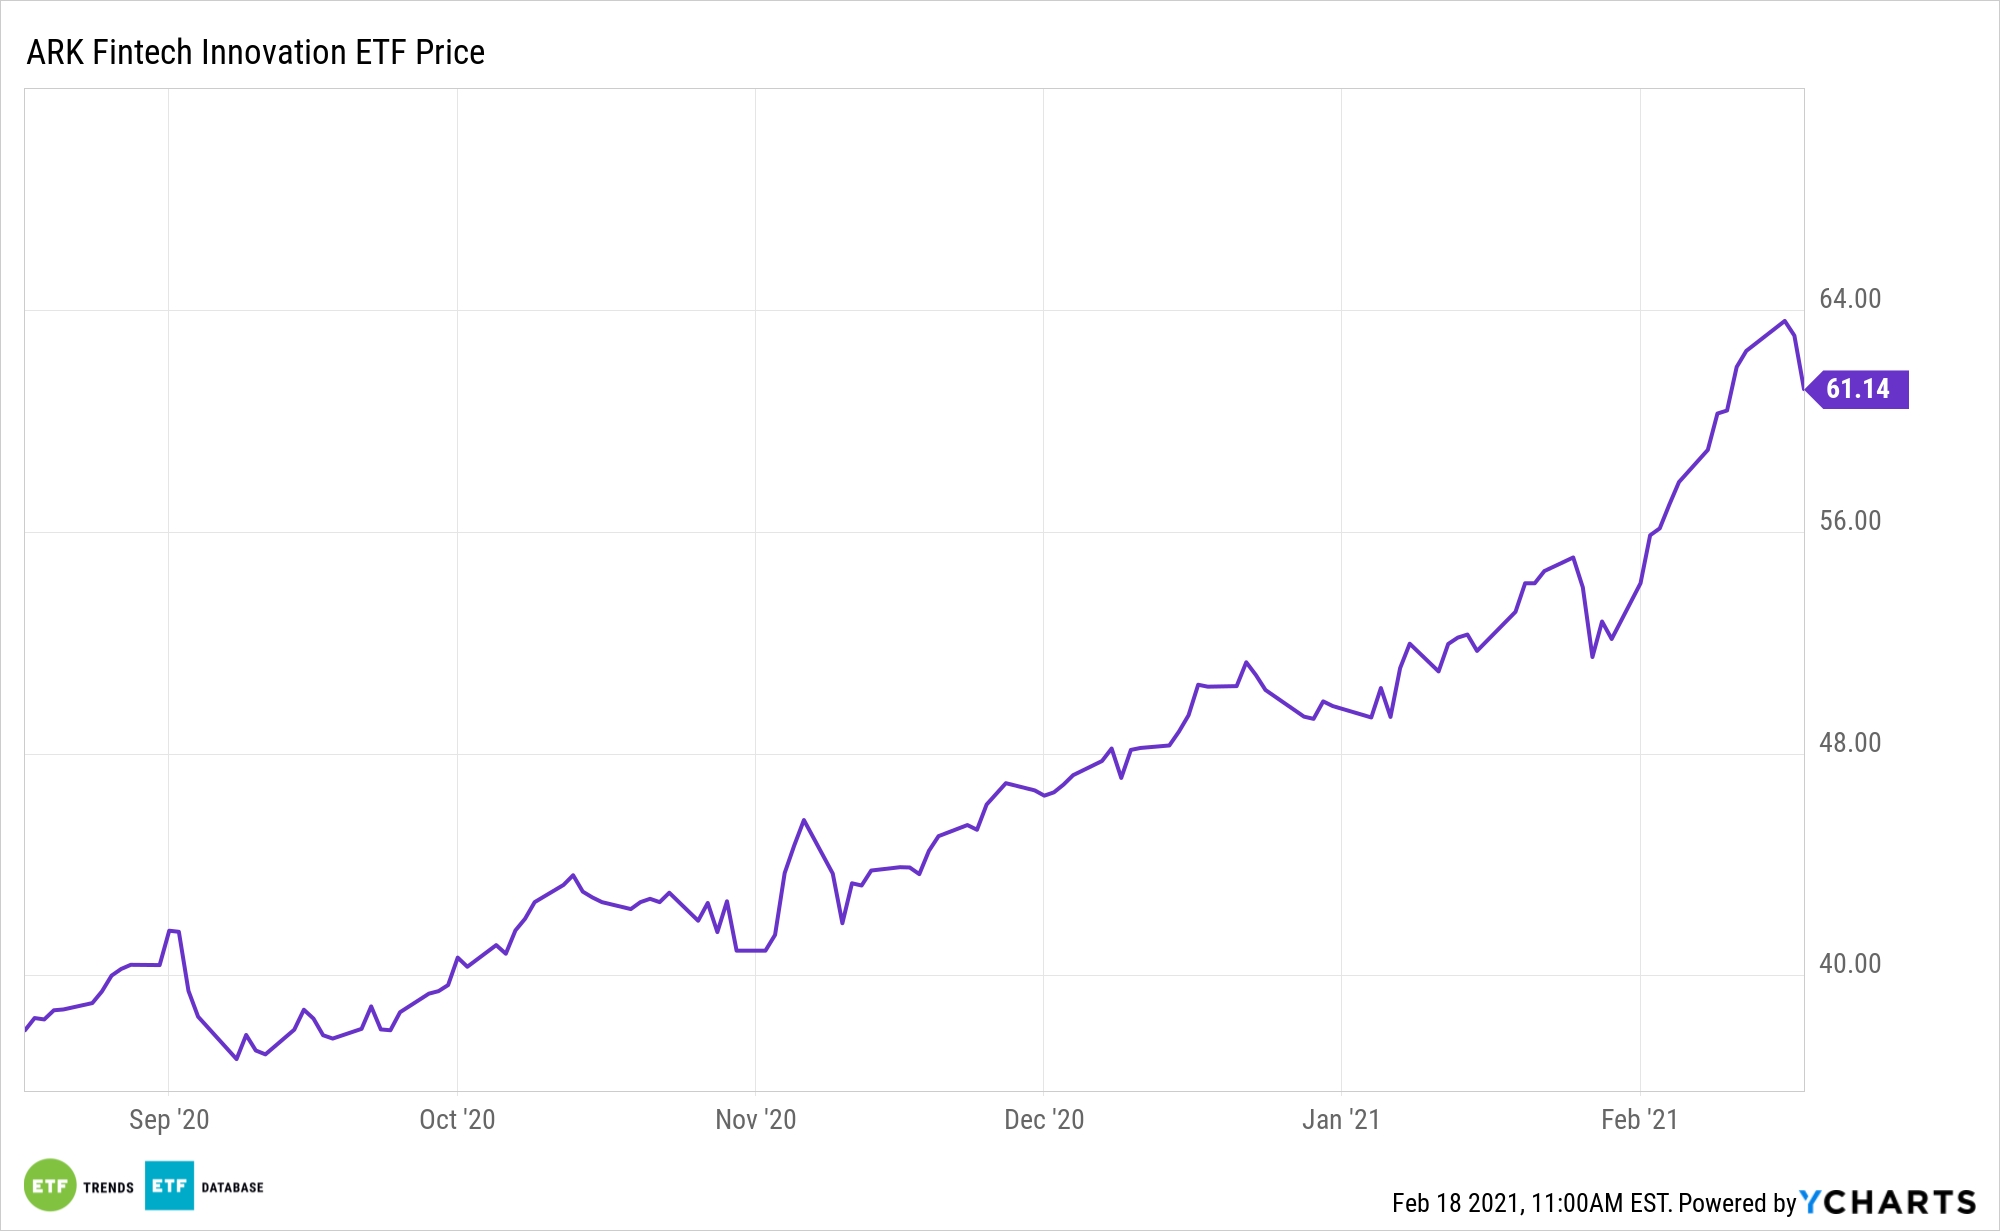 ARKF 6 Month Performance